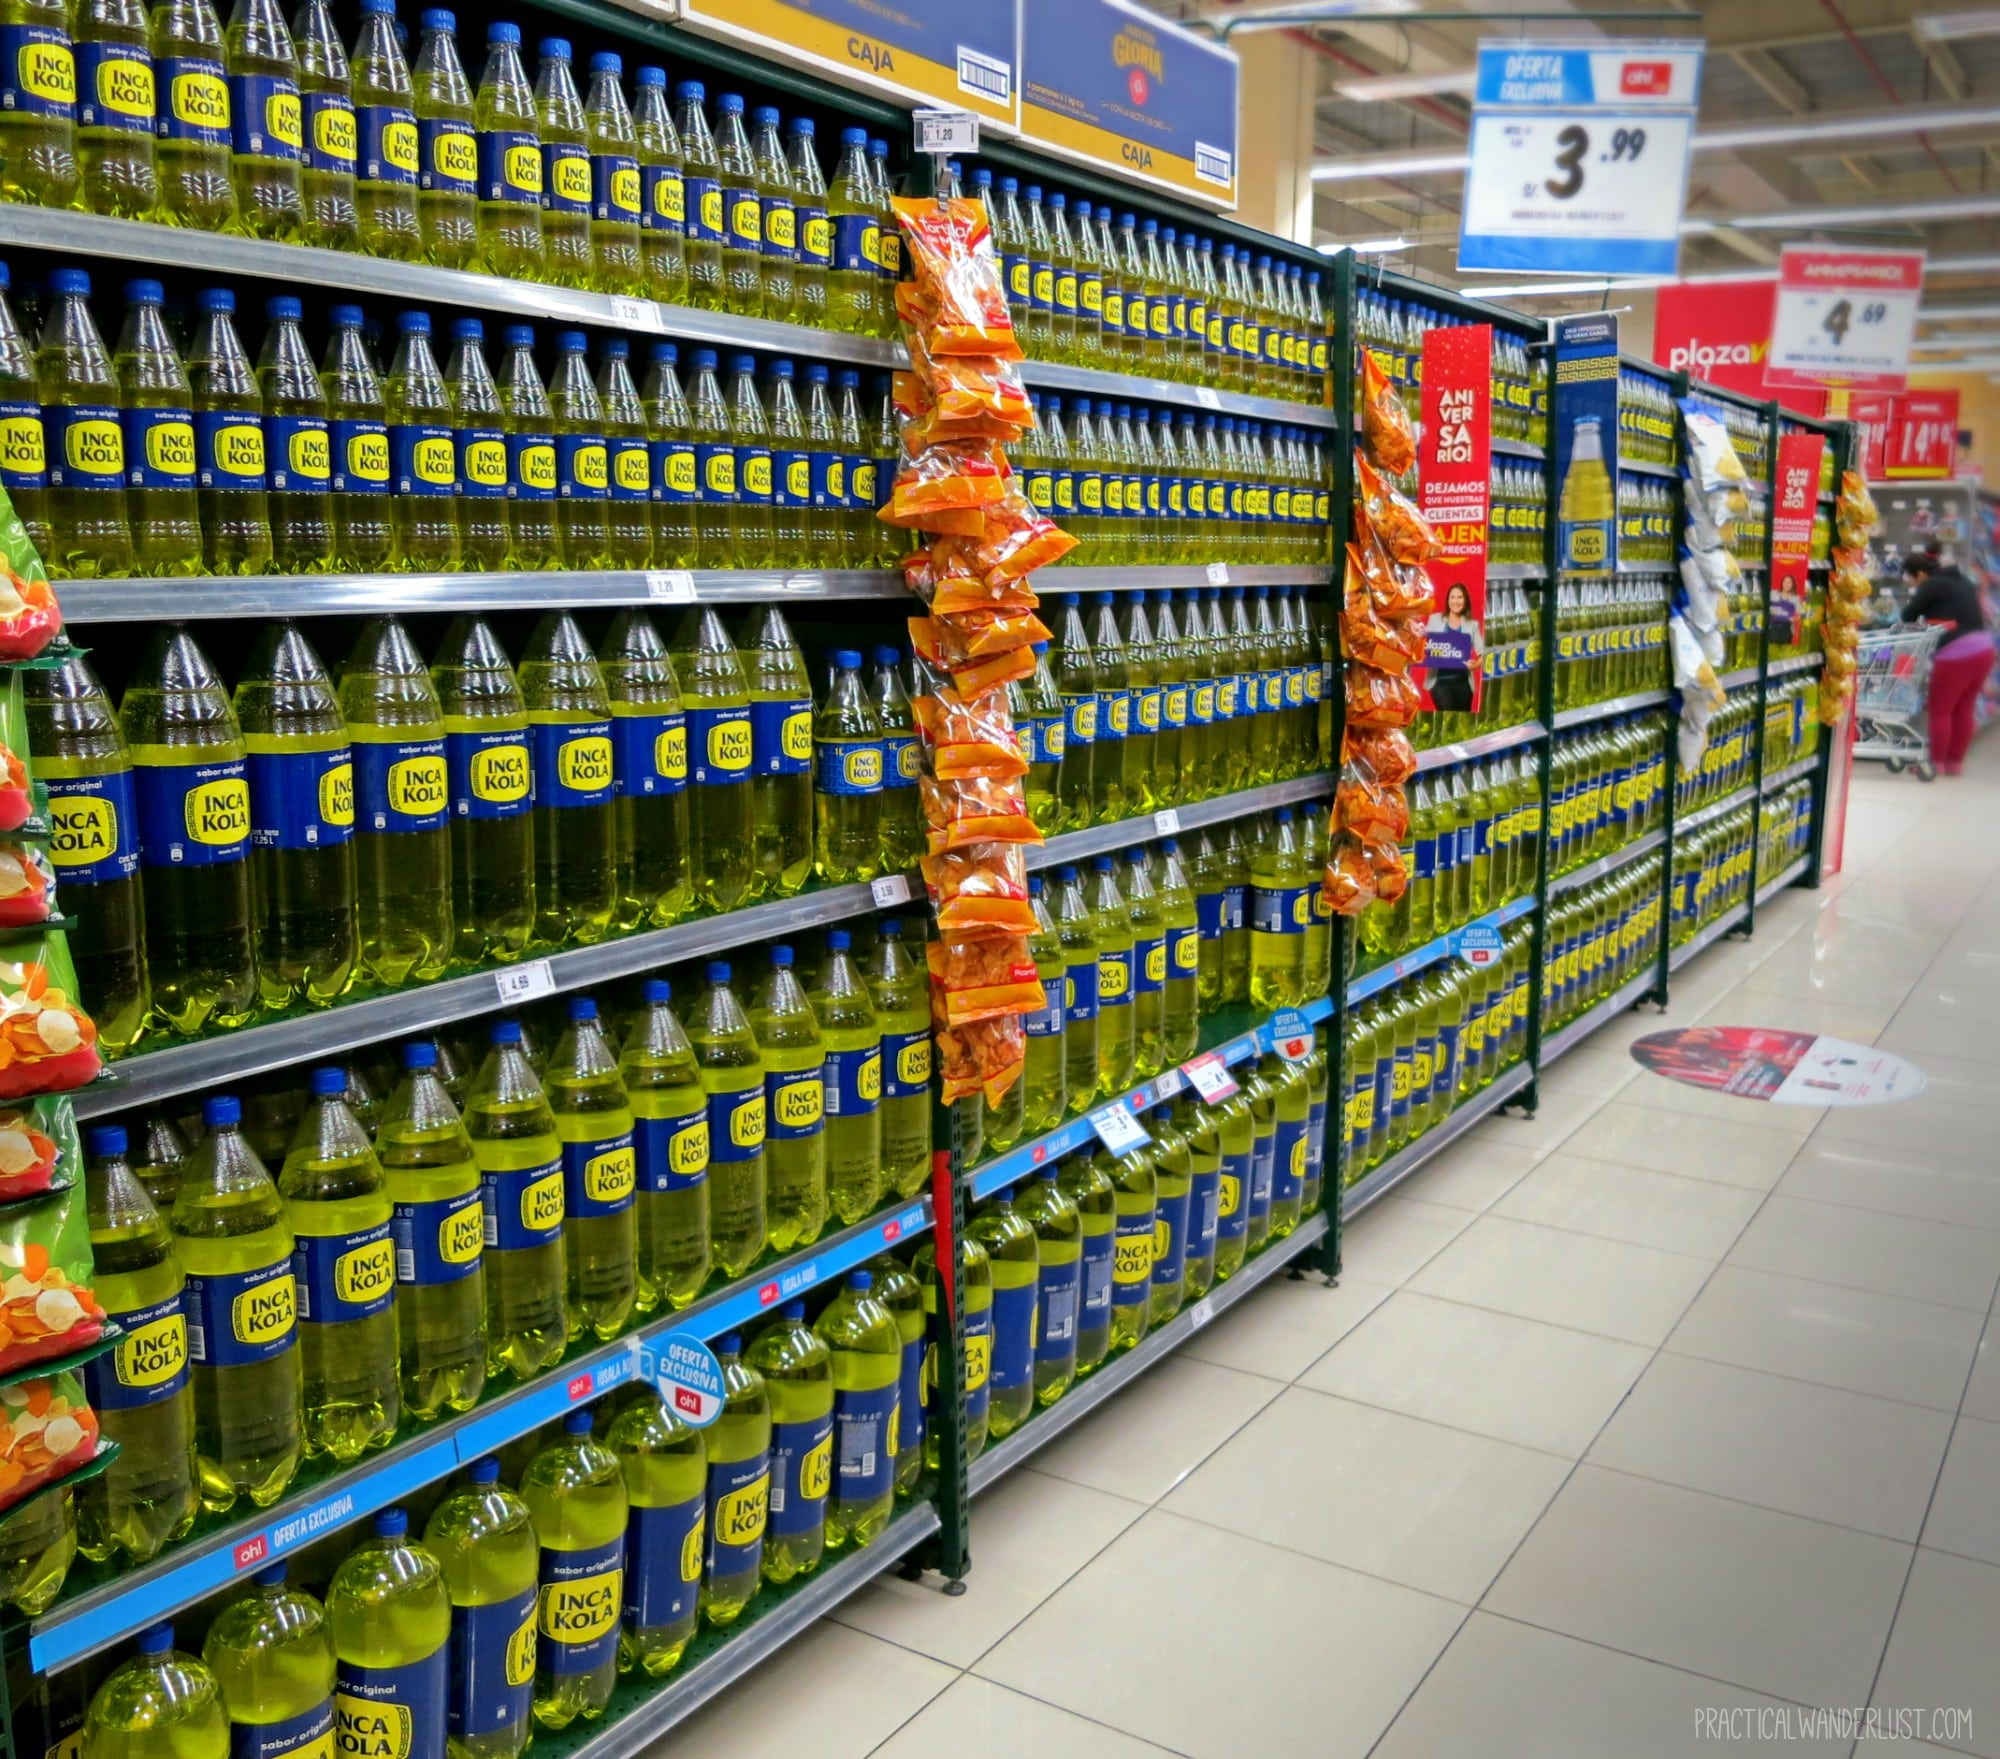 A supermarket aisle in Arequipa filled with Inca Kola. Peru is obsessed with Inca Kola! It's one of the things nobody told us about backpacking in Peru!A supermarket aisle in Arequipa filled with Inca Kola. Peru is obsessed with Inca Kola! It's one of the things nobody told us about backpacking in Peru!